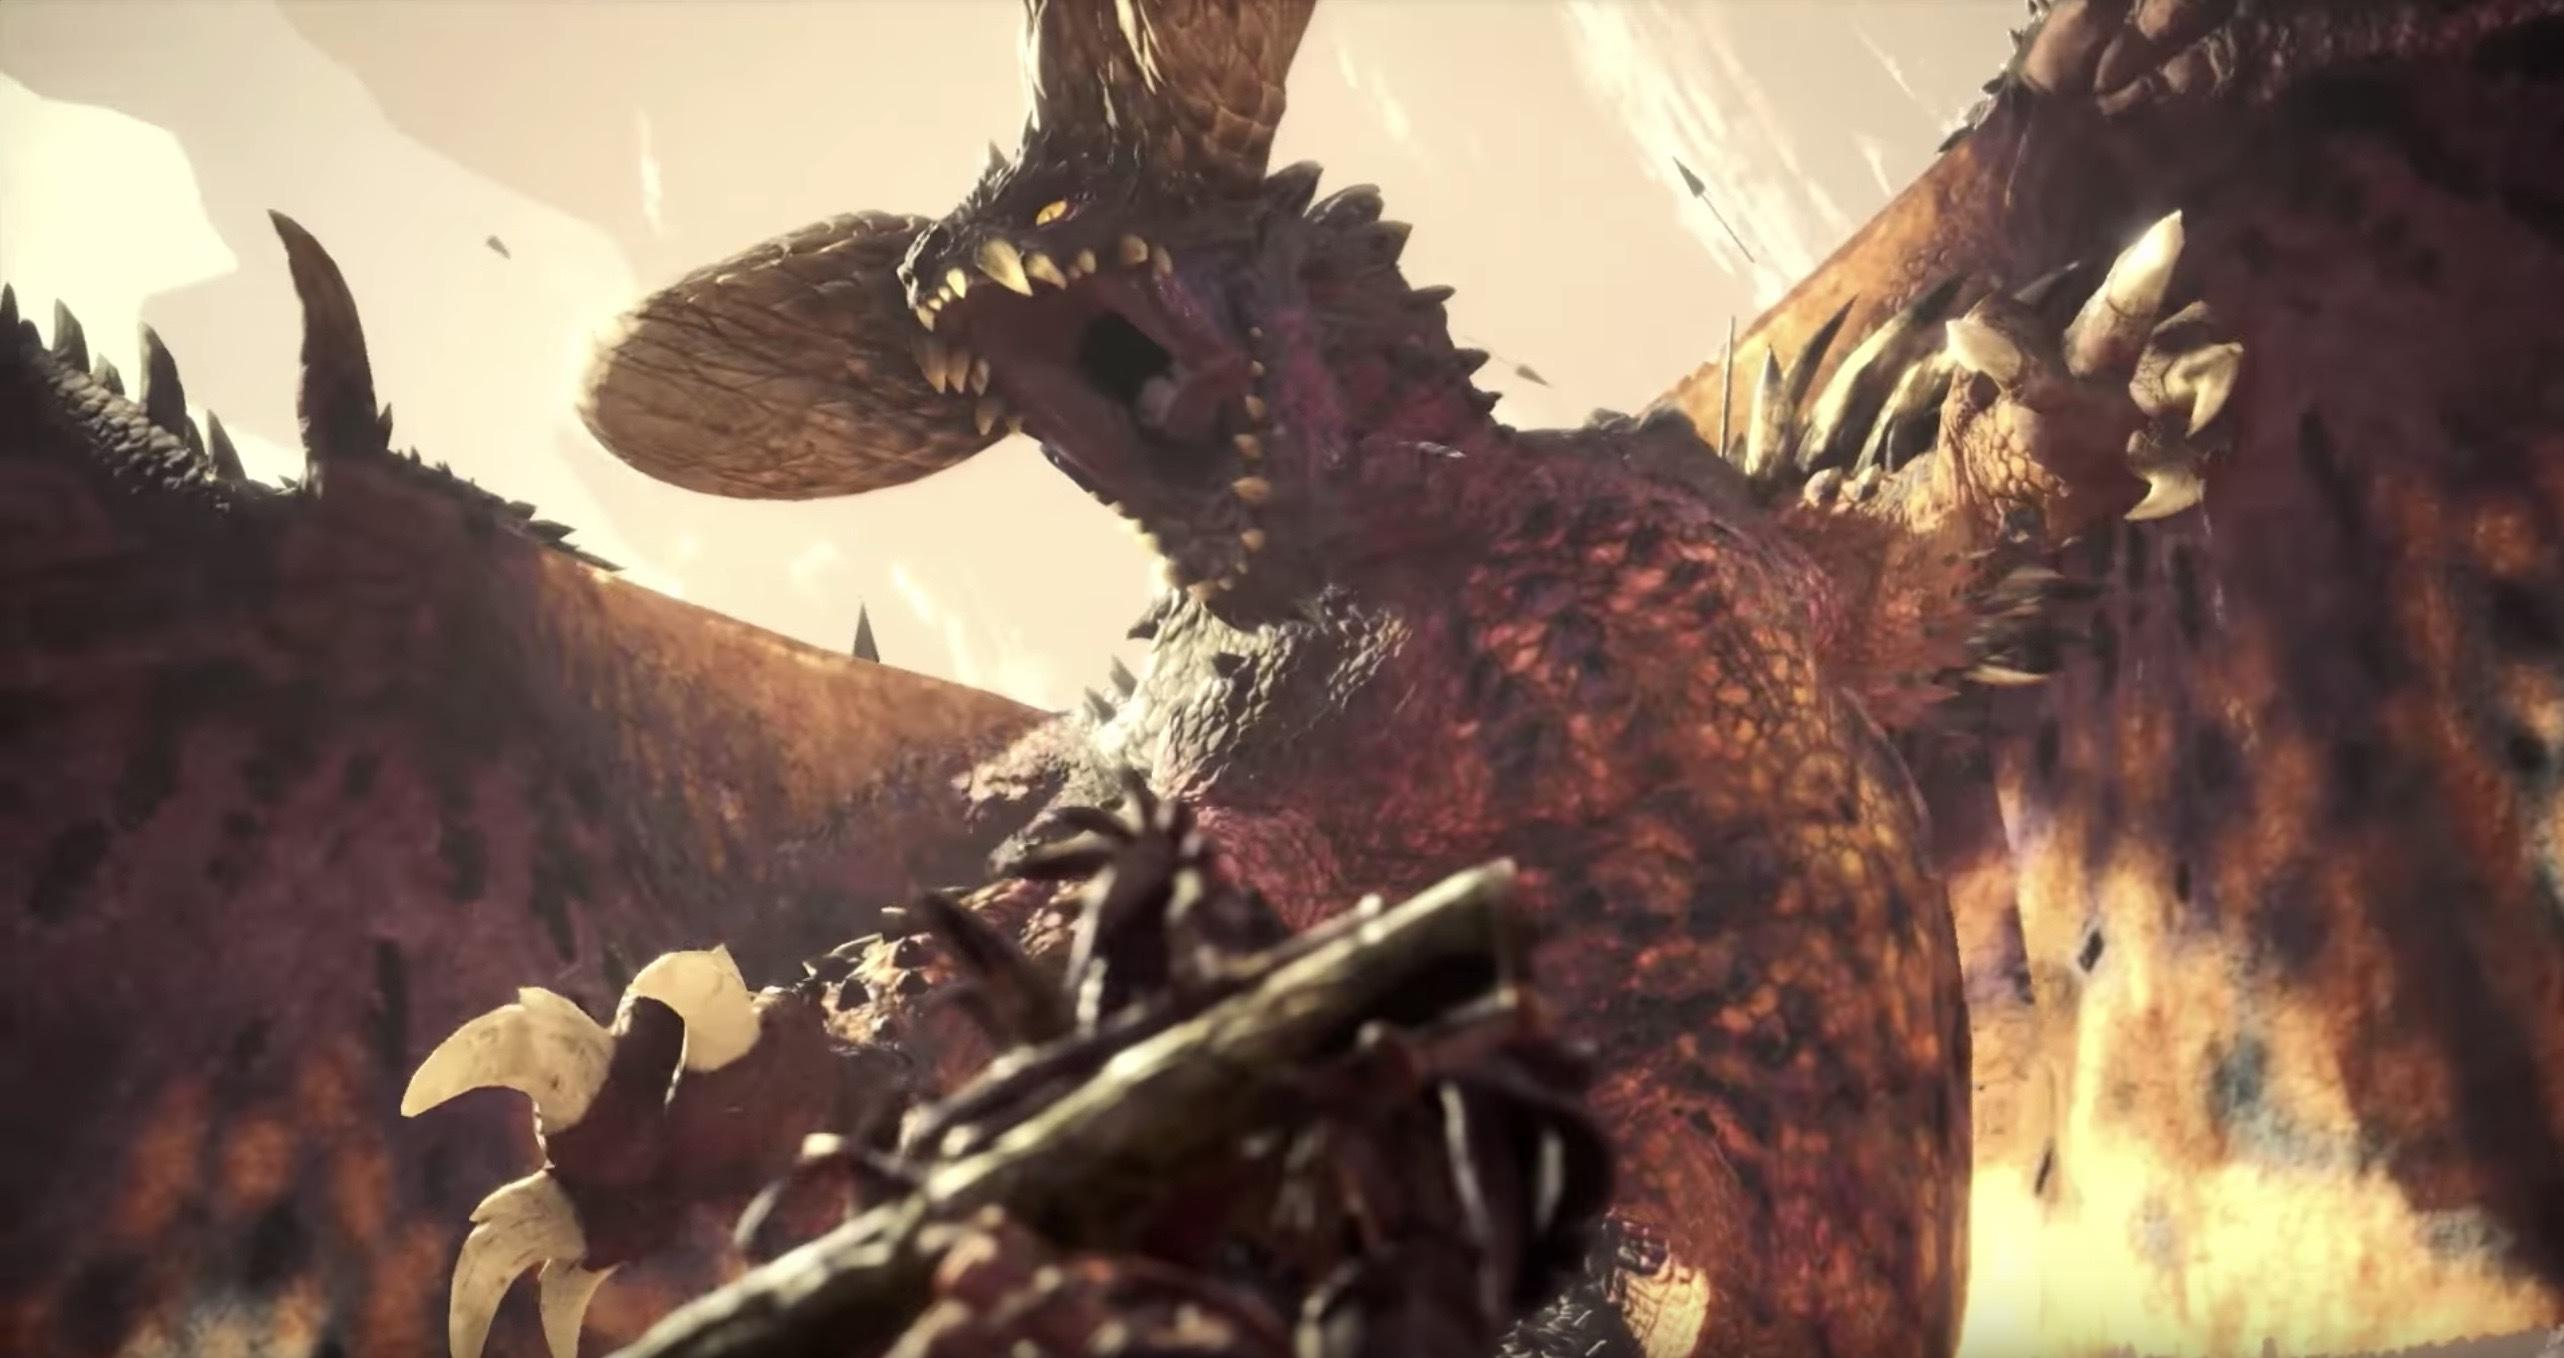 Monster Hunter World Trailer Details Elder Dragons; Final Beta Starts Jan 18th